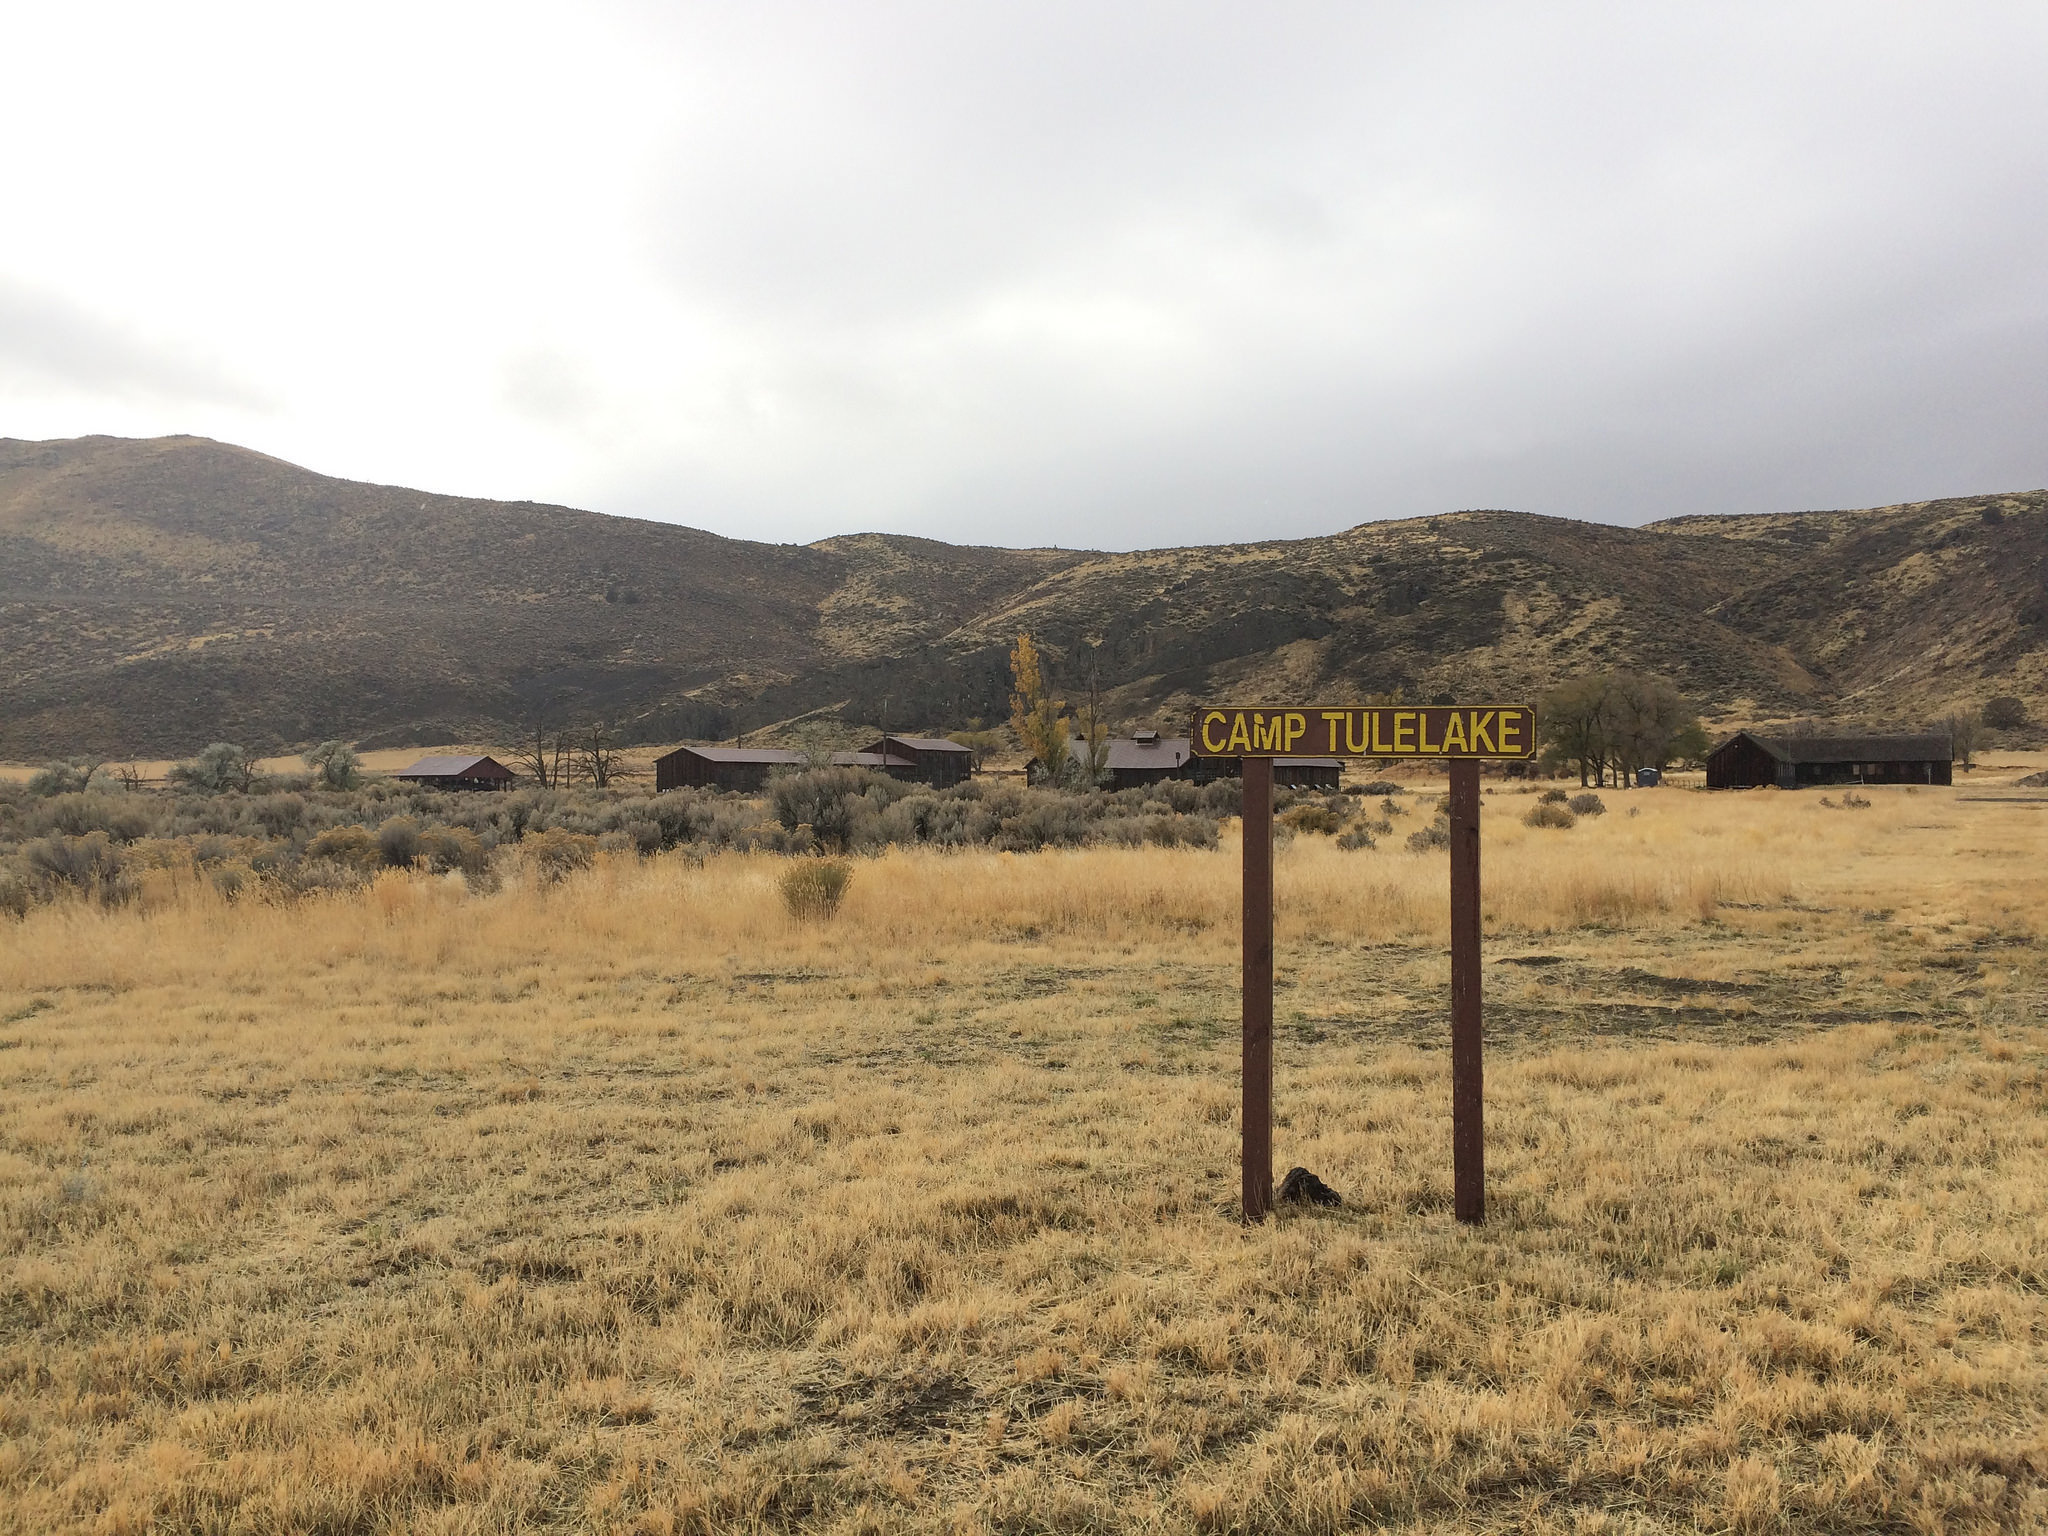 The entrance to Camp Tulelake, a former Civilian Conservation Corps camp that held Japanese American incarcerees early on during World War II.